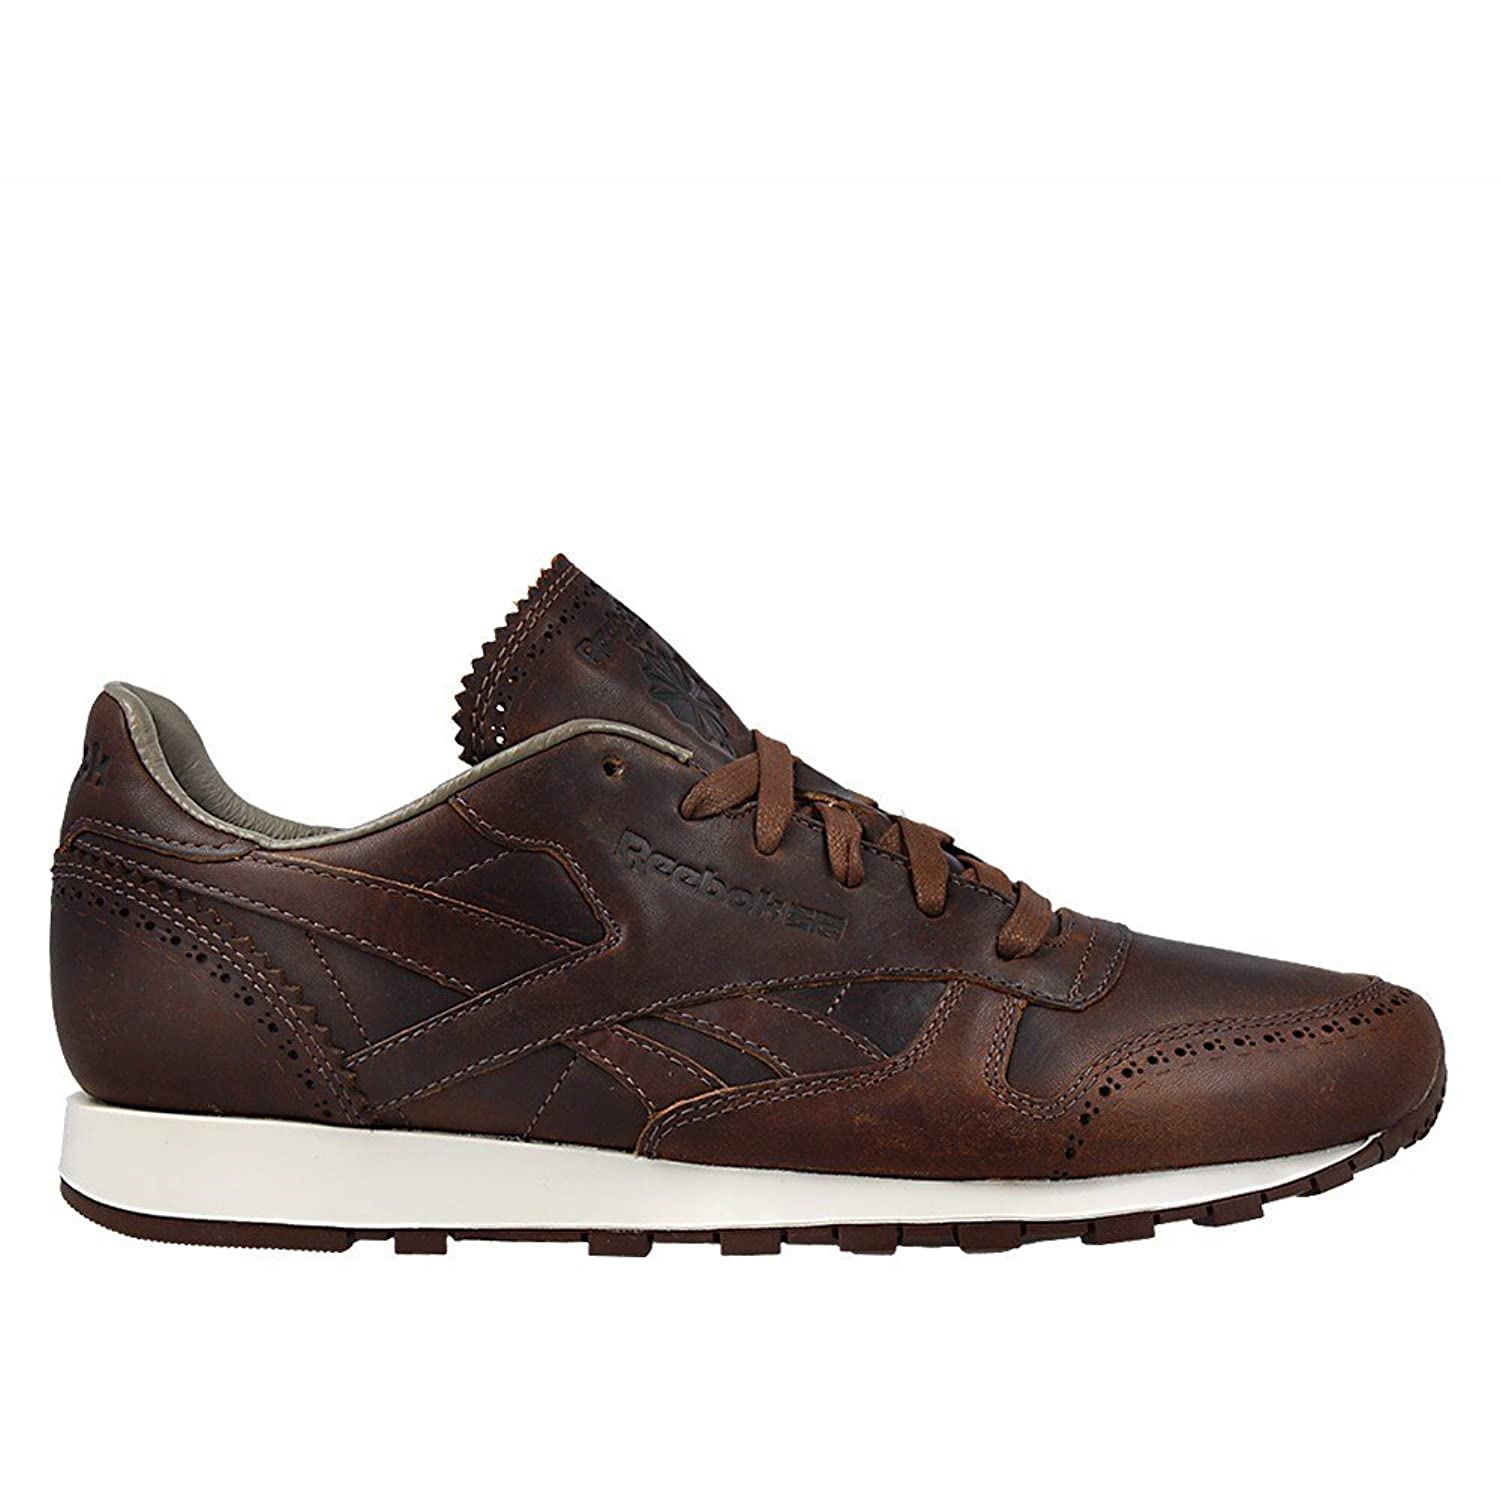 Reebok De Cuero Clásico Lux Amazon SO4xIcC